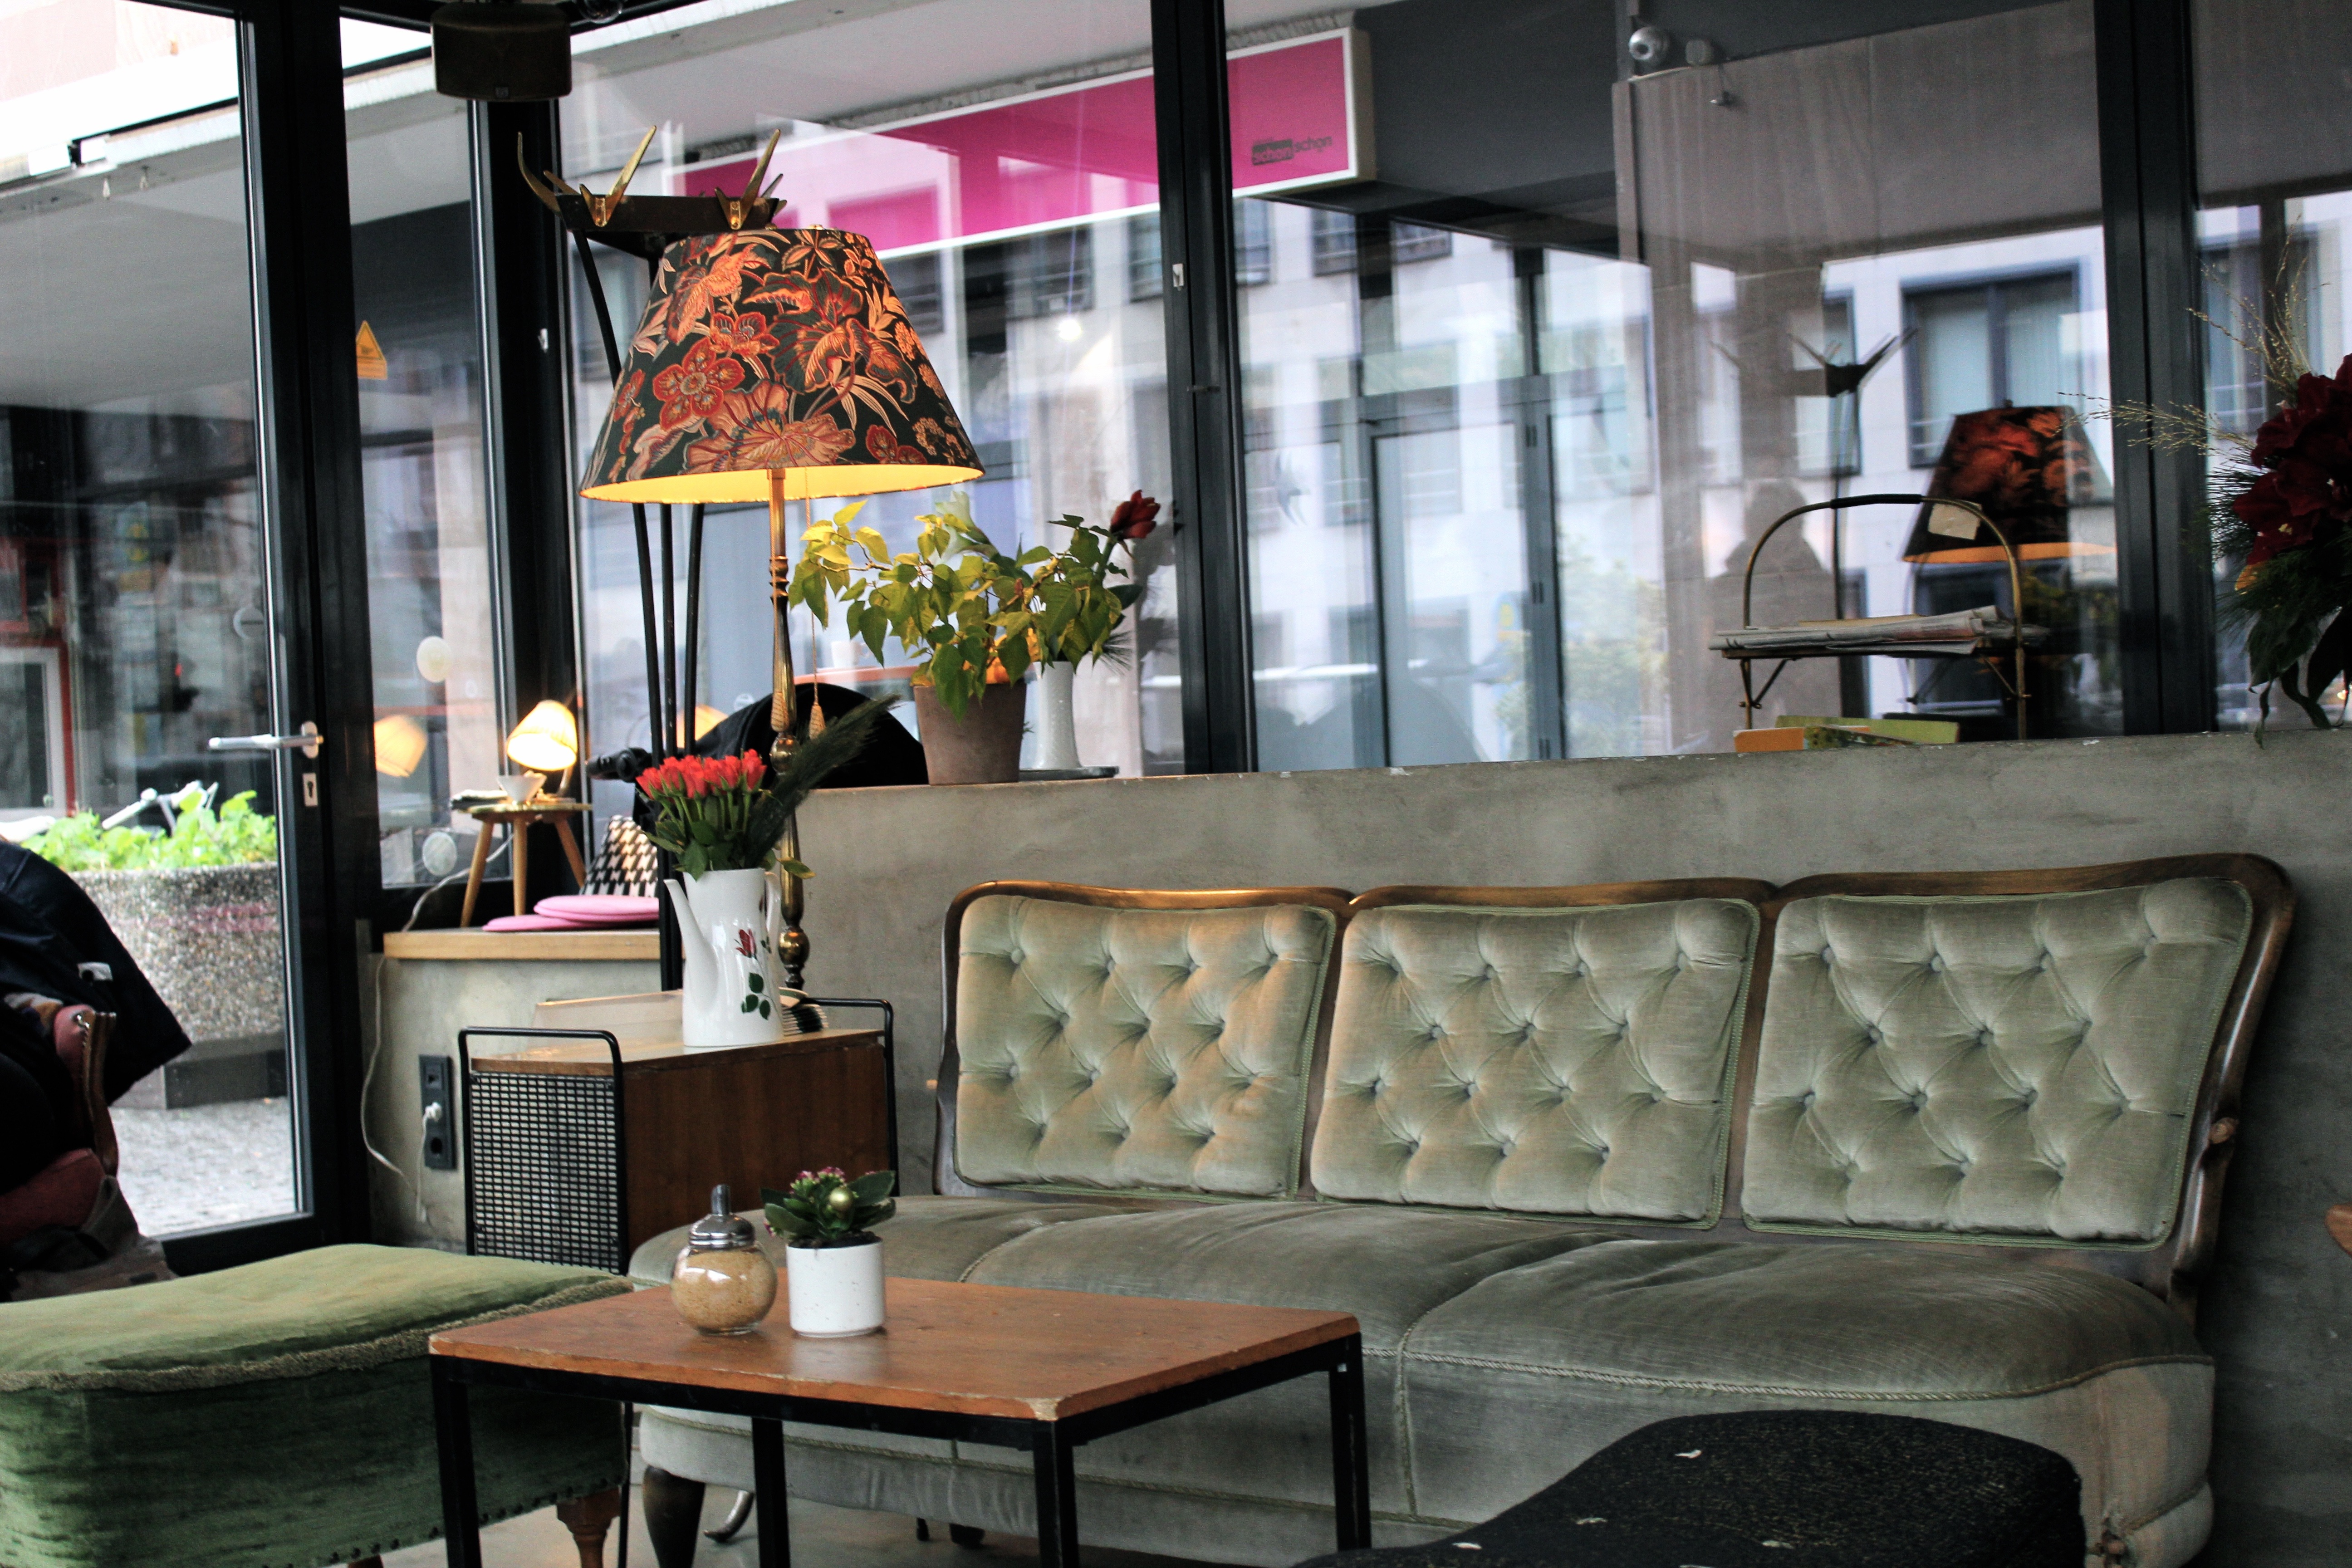 Vintage-Liebe im Café Blumen • Interieur, Travel, Food and all the ...